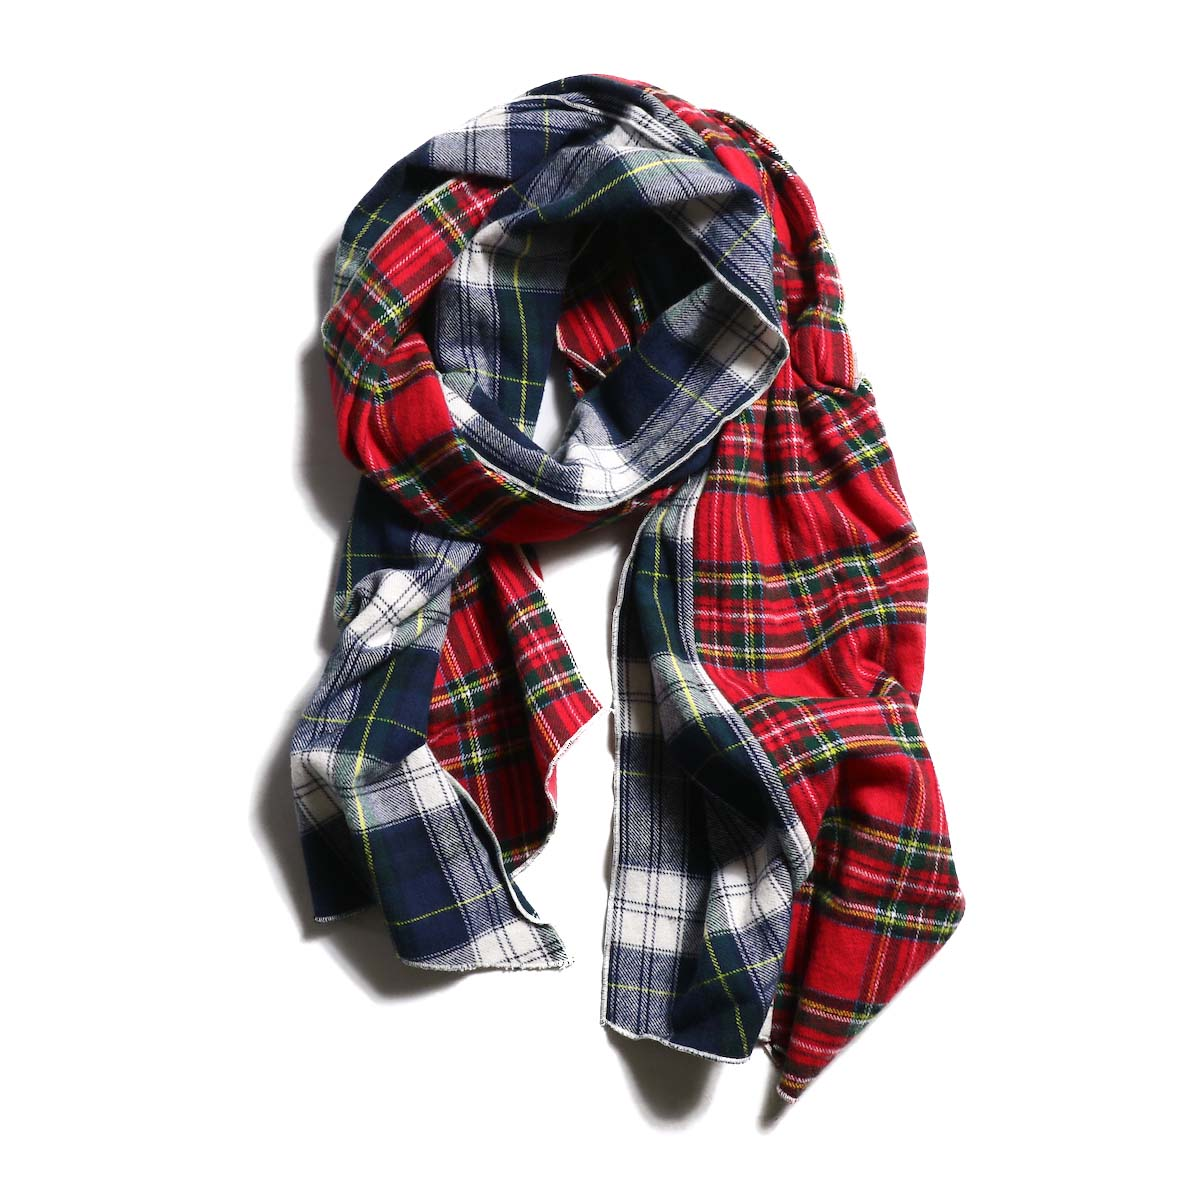 AiE / dls scarf - Cotton Flannel Plaid (Blue×Green)